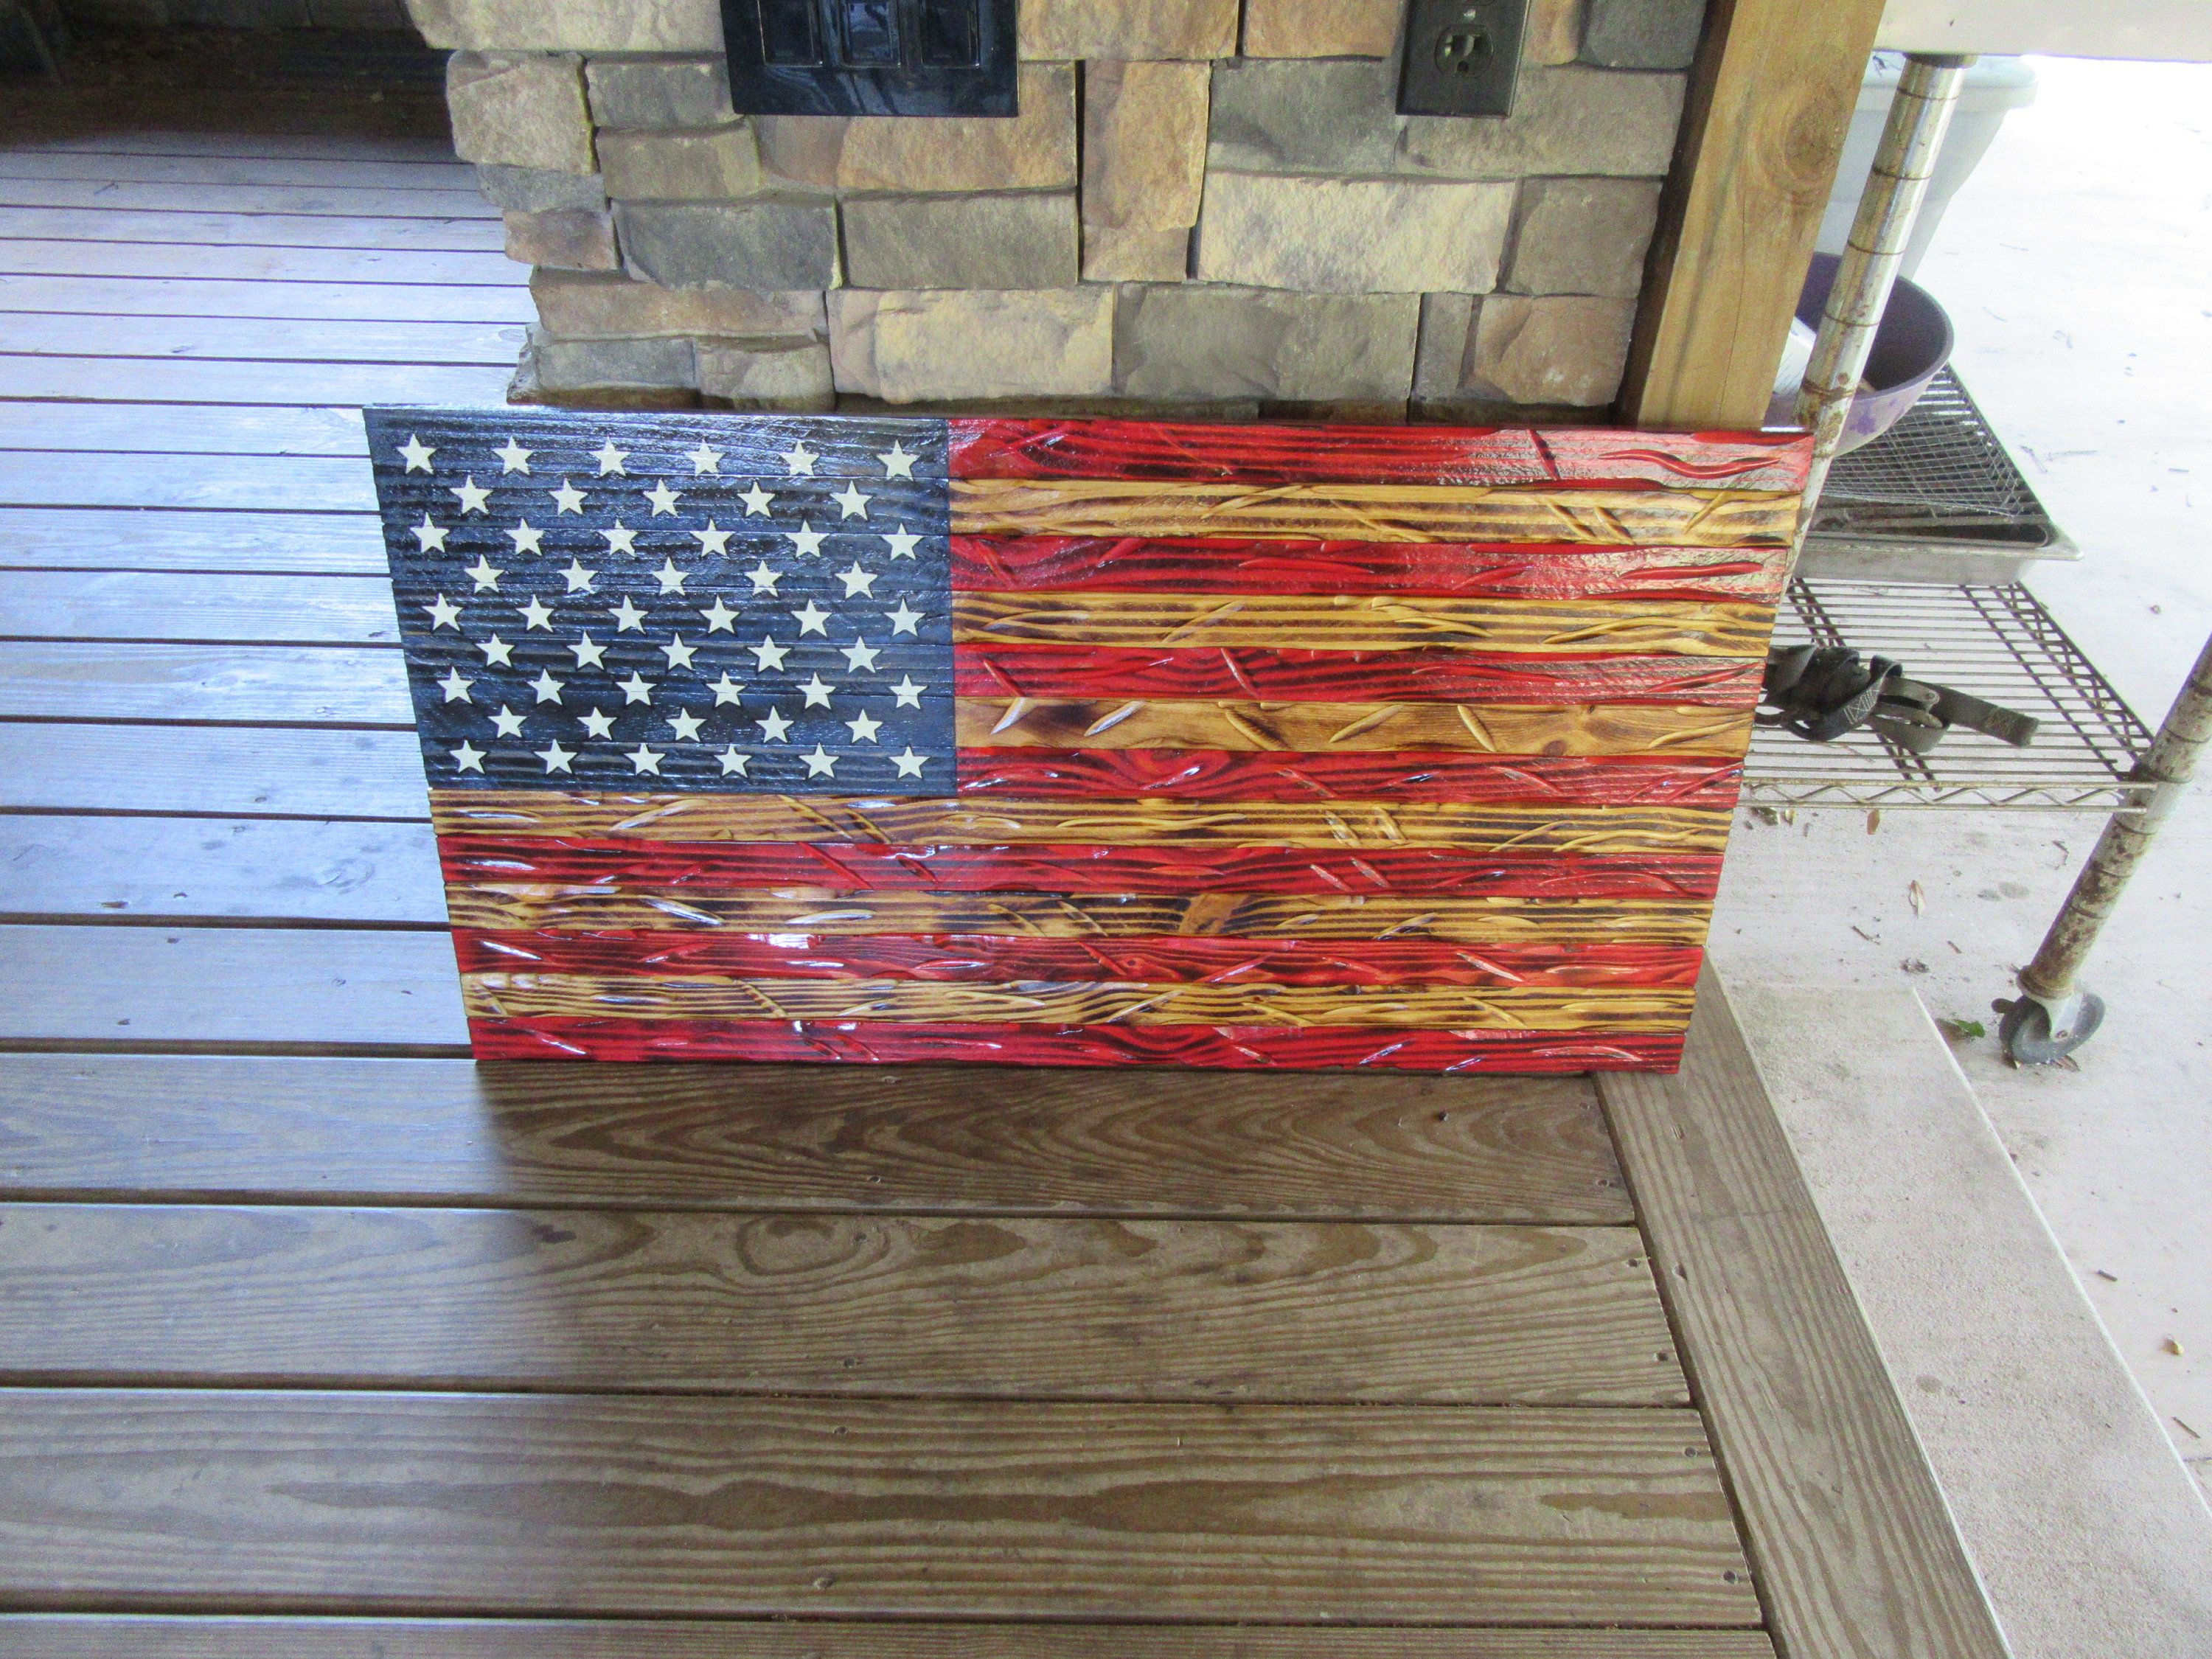 Welder Builds Wood American Flag Distressed My Store Is Metaldisorder 20 X 37 Red White Blue U S A American Flag Wood Red Wood Stain American Flag